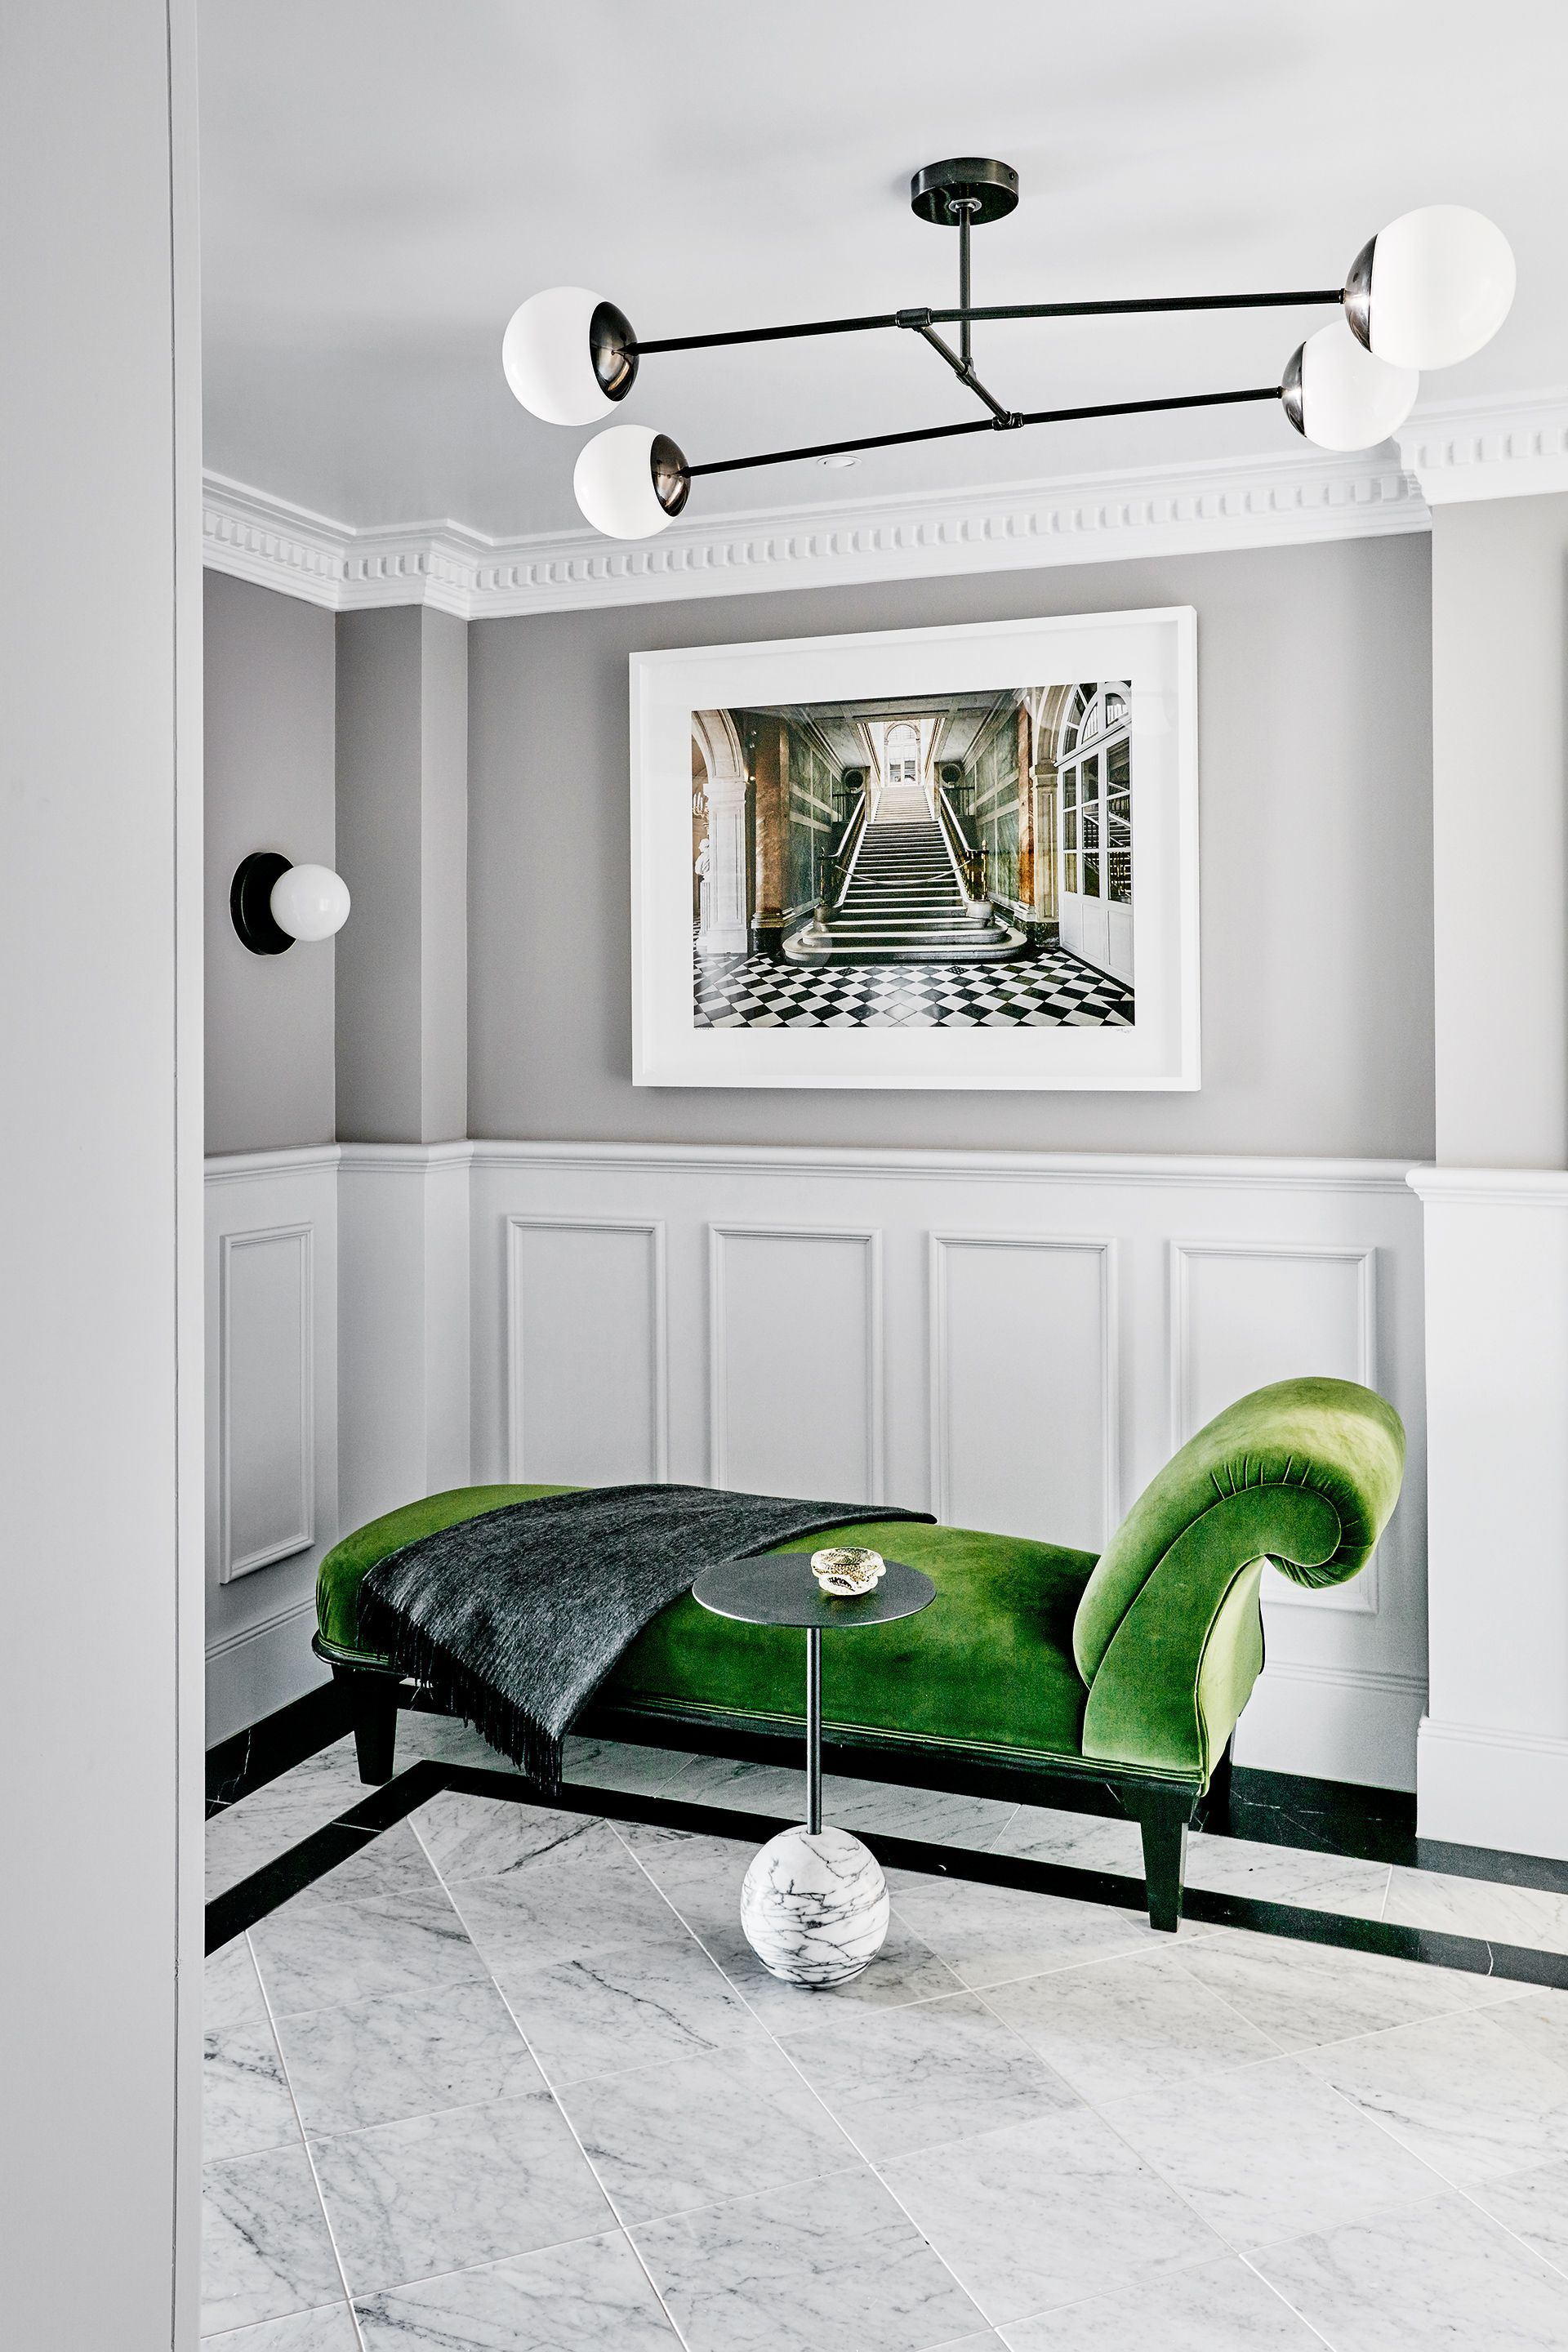 Classic features such as panelling marble floors and intricate